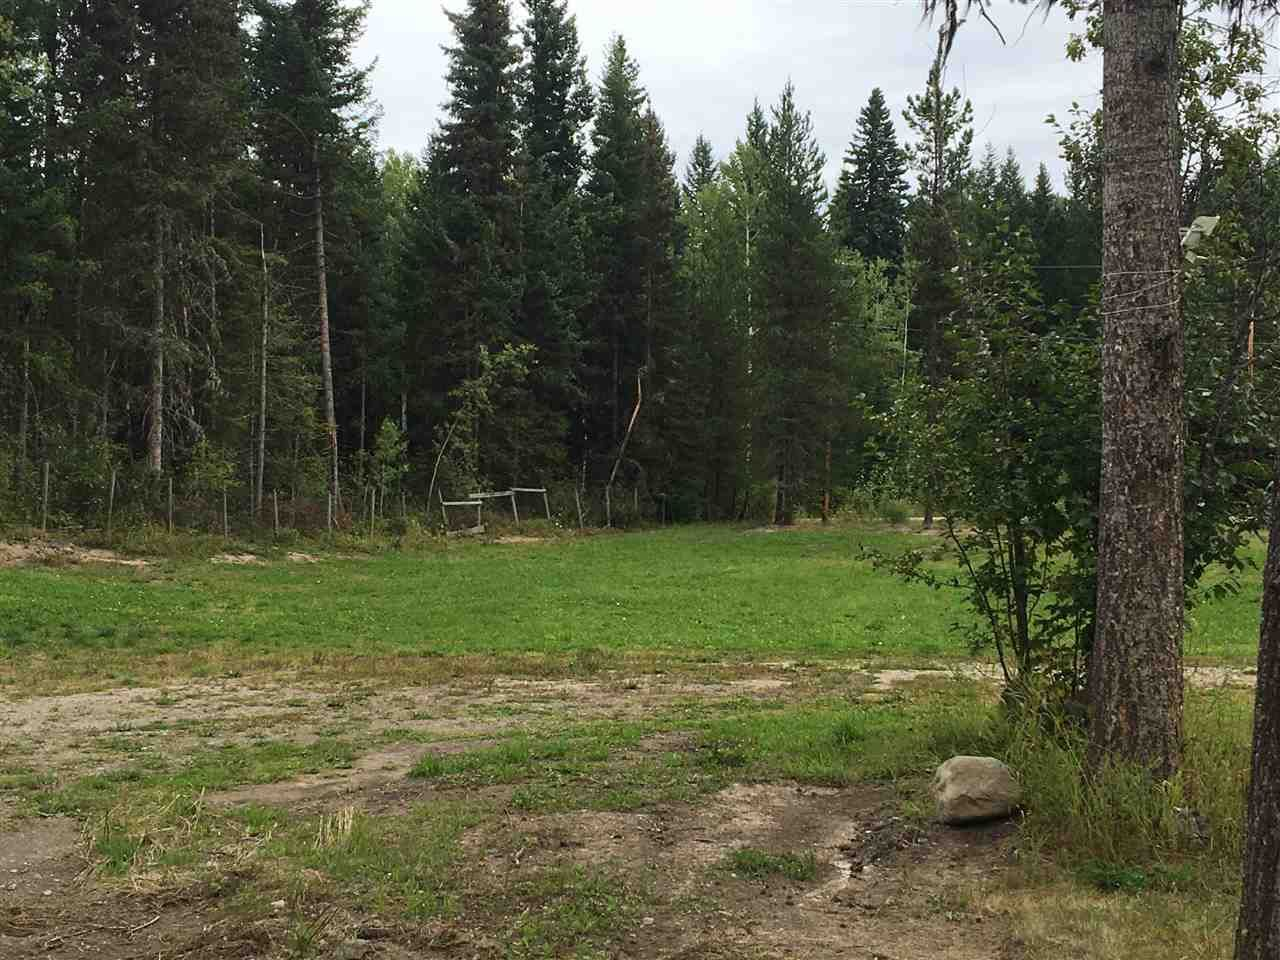 Photo 20: Photos: 2404 N VERNON Road in Quesnel: Bouchie Lake Manufactured Home for sale (Quesnel (Zone 28))  : MLS®# R2492081